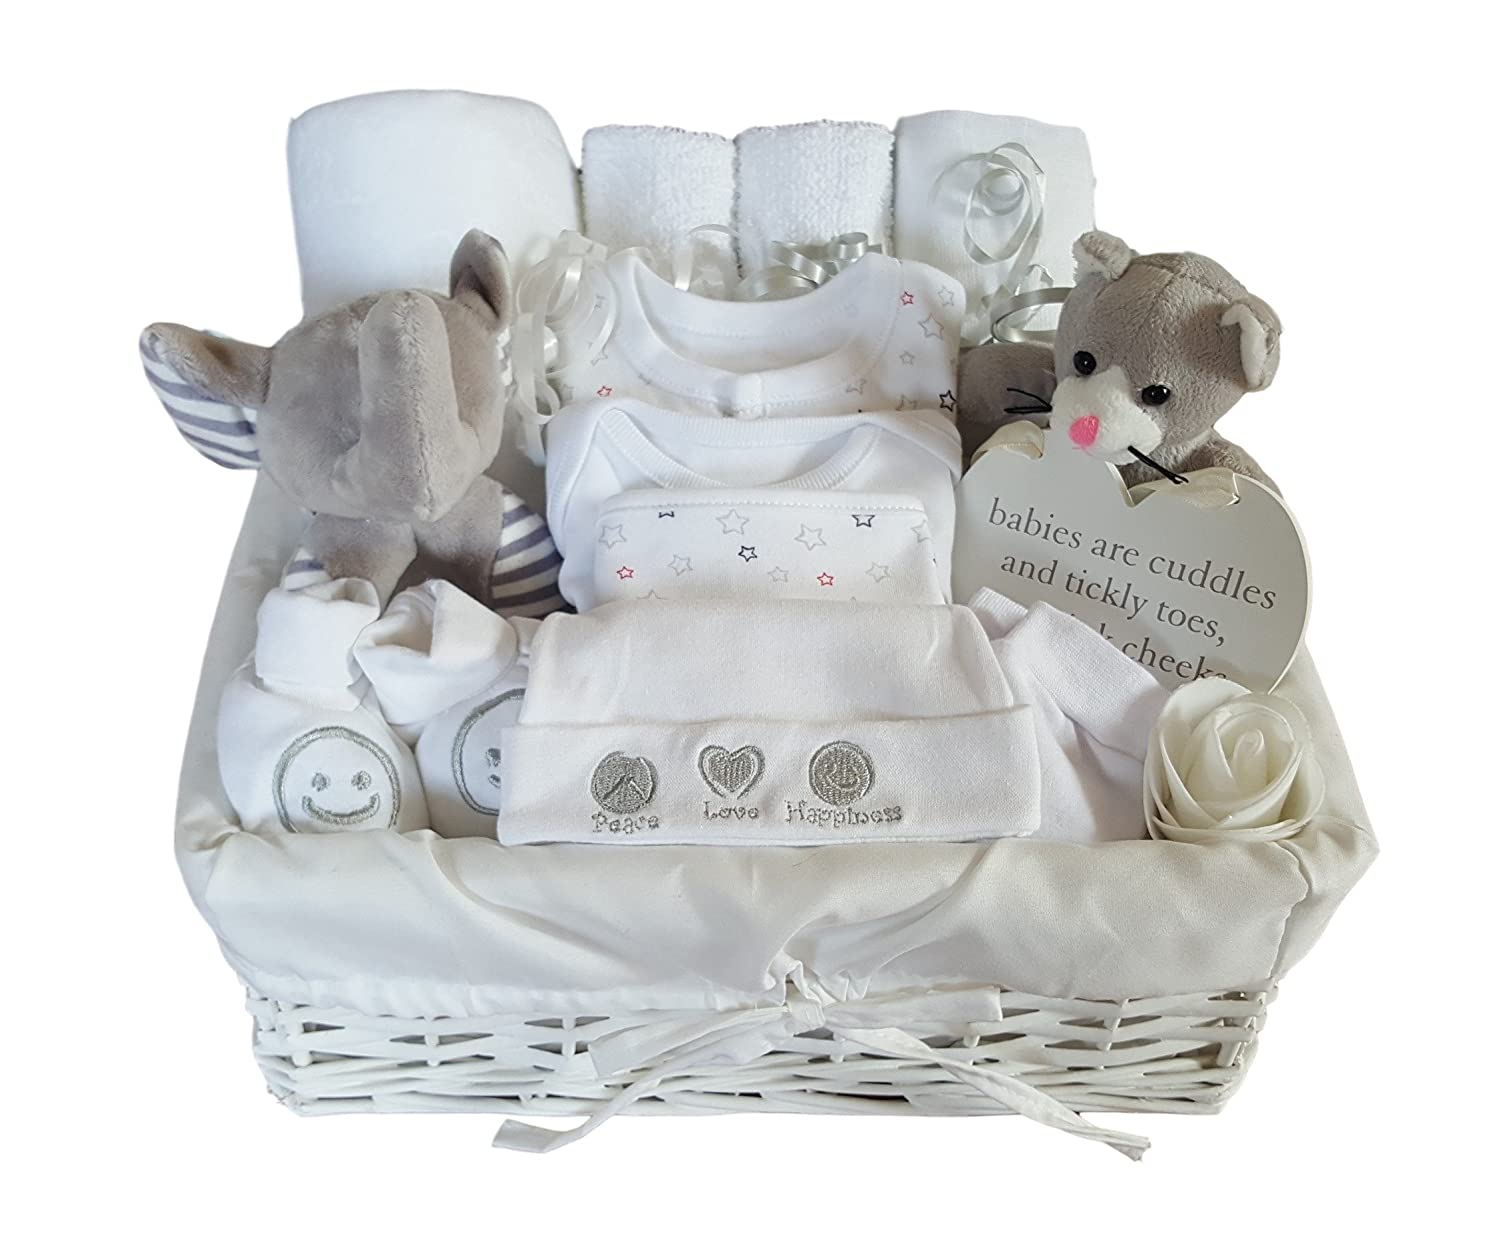 Baby Gift Basket Neutral. Baby Gift Hamper Neutral. Baby Gift Set Neutral. Baby Shower Gift Basket. New Baby Gift. Unisex Baby Gift Basket The Gift Basket Boutique